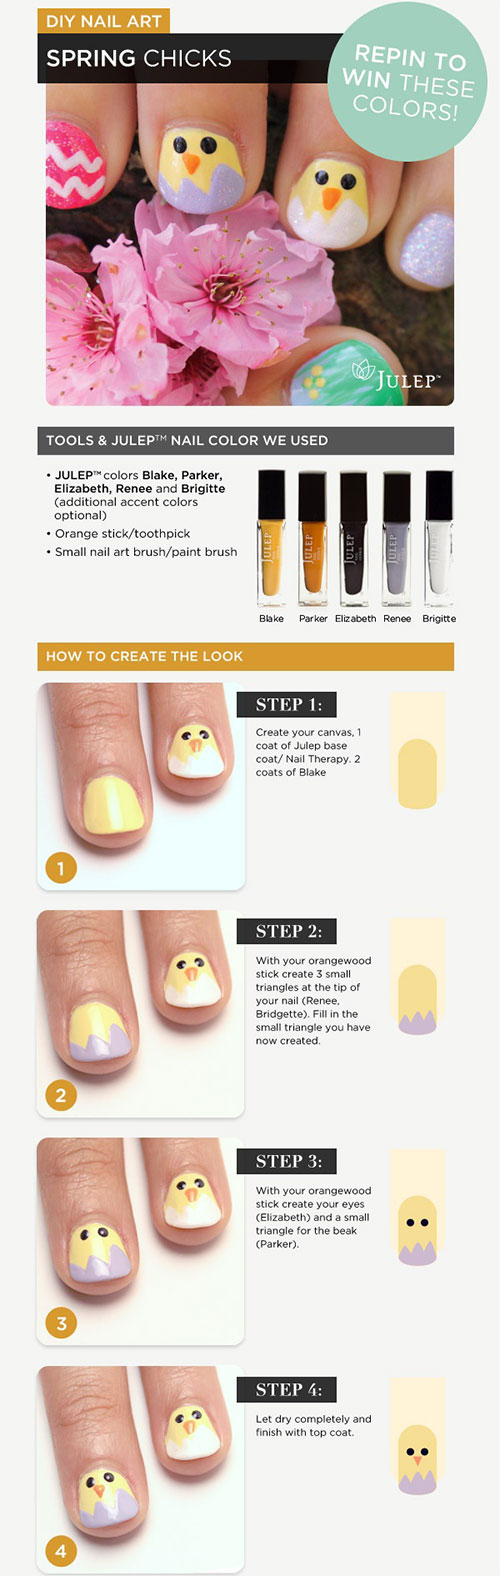 10 Step By Step Easter Nail Art Tutorials For Beginners Learners 2015 8 10 Step By Step Easter Nail Art Tutorials For Beginners & Learners 2015